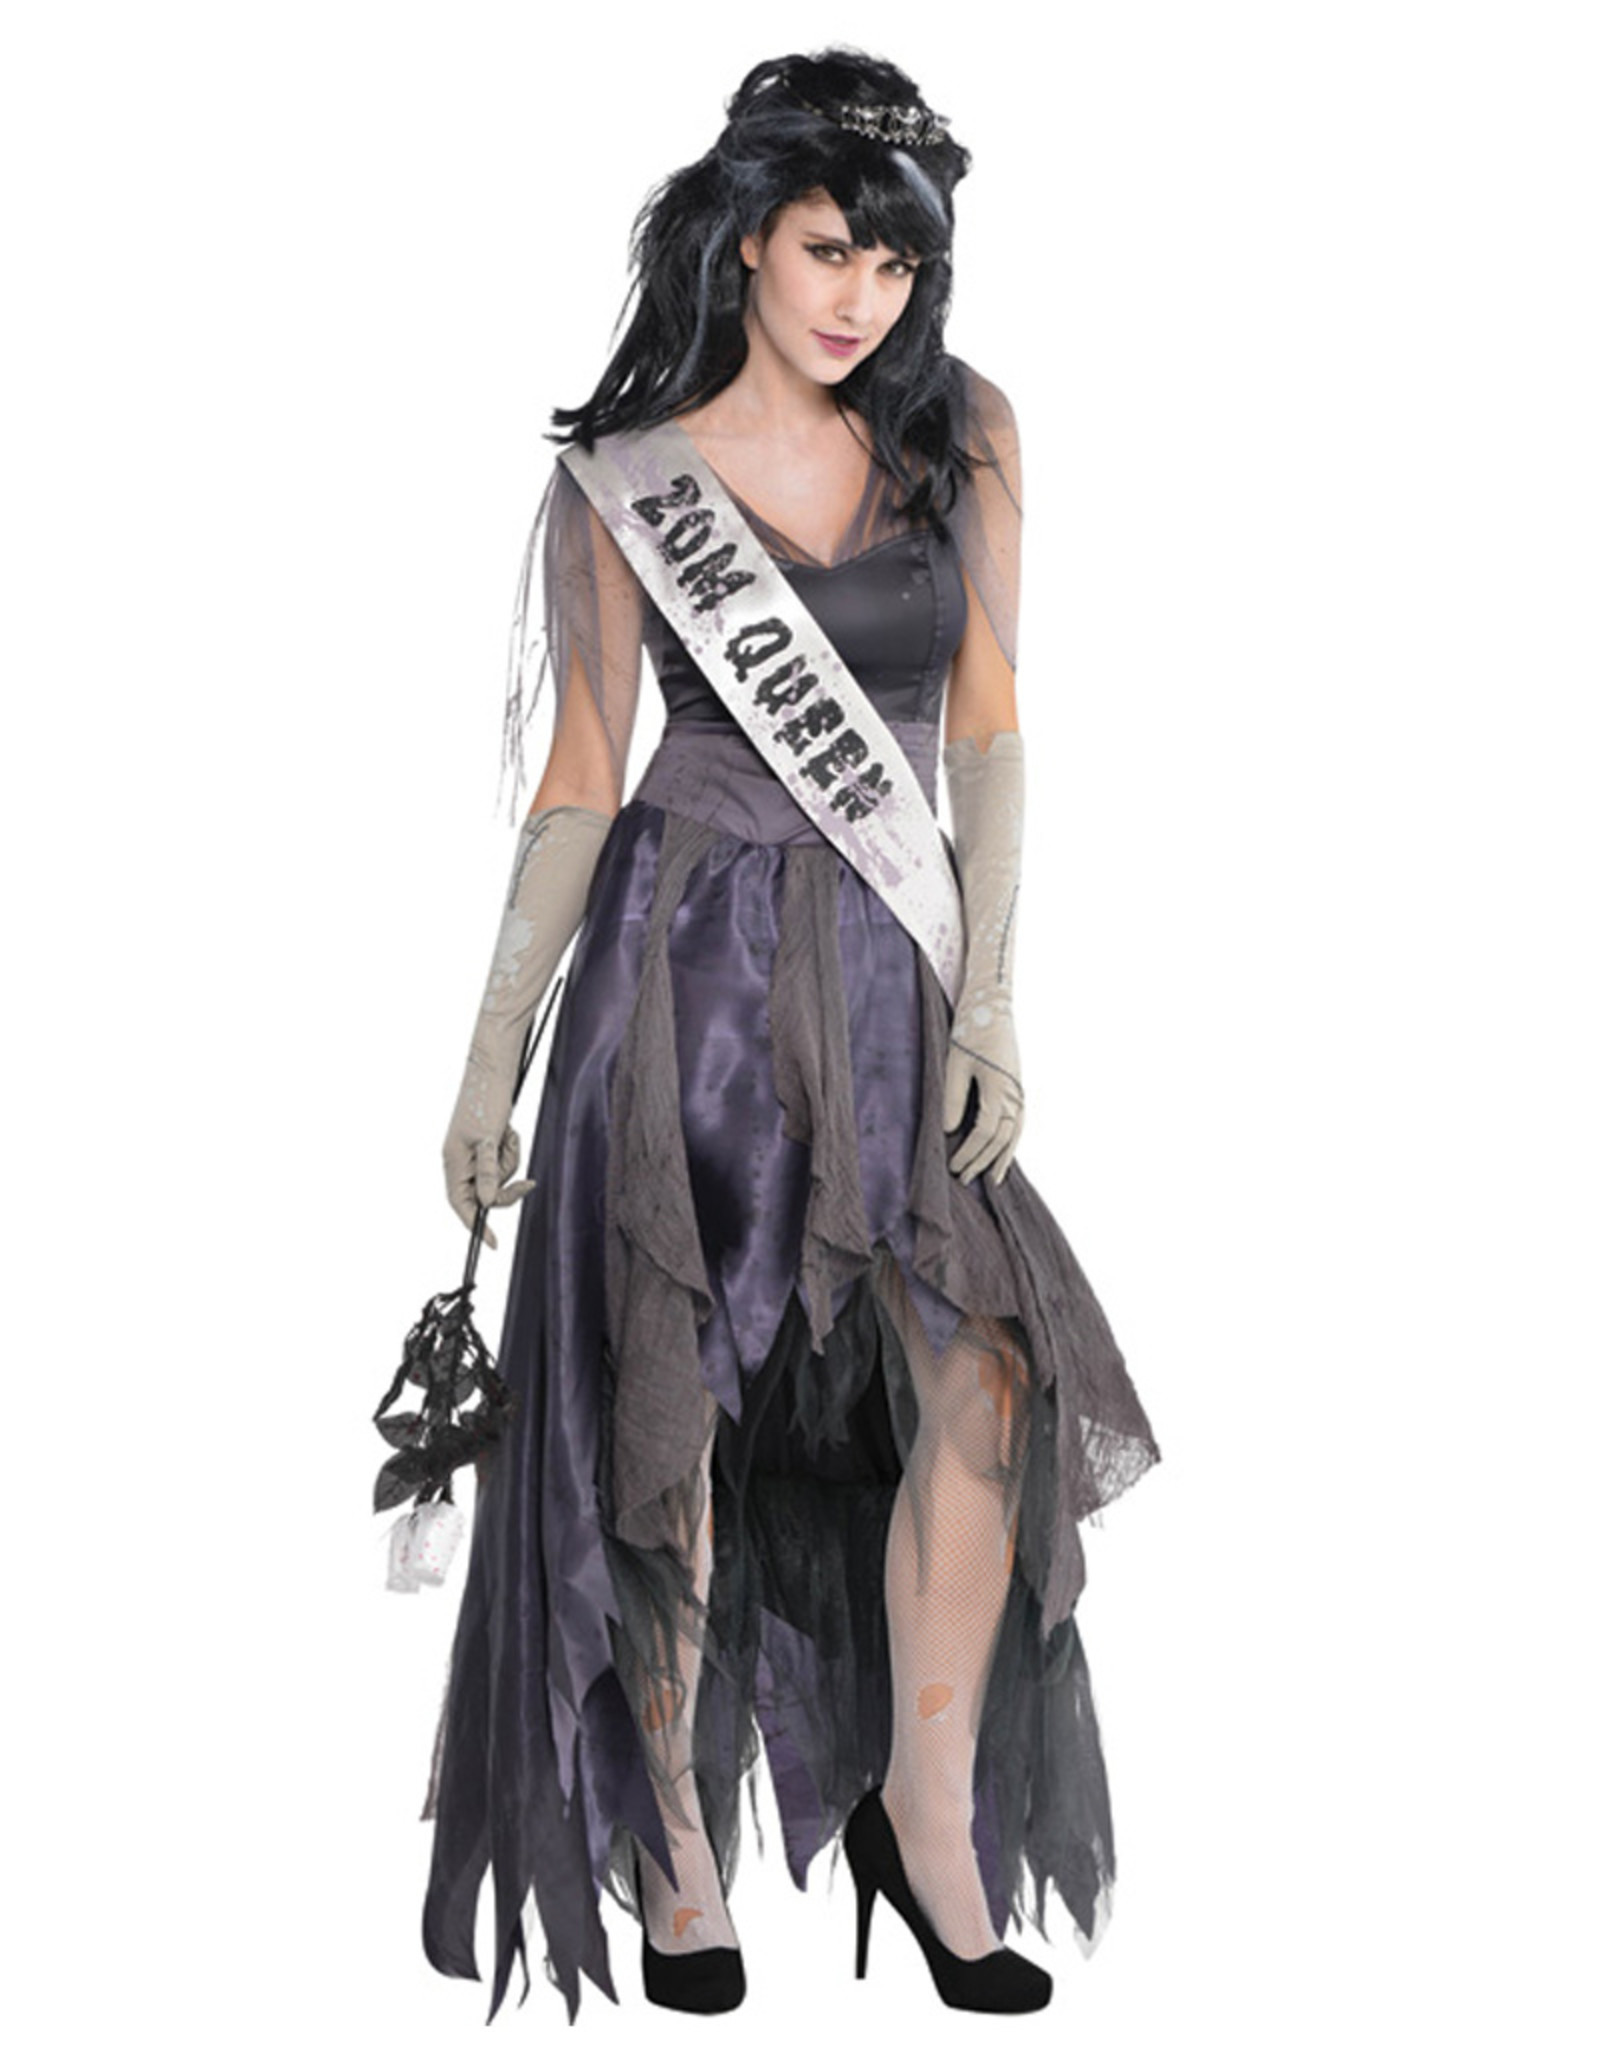 Homecoming Corpse Costume - Women's